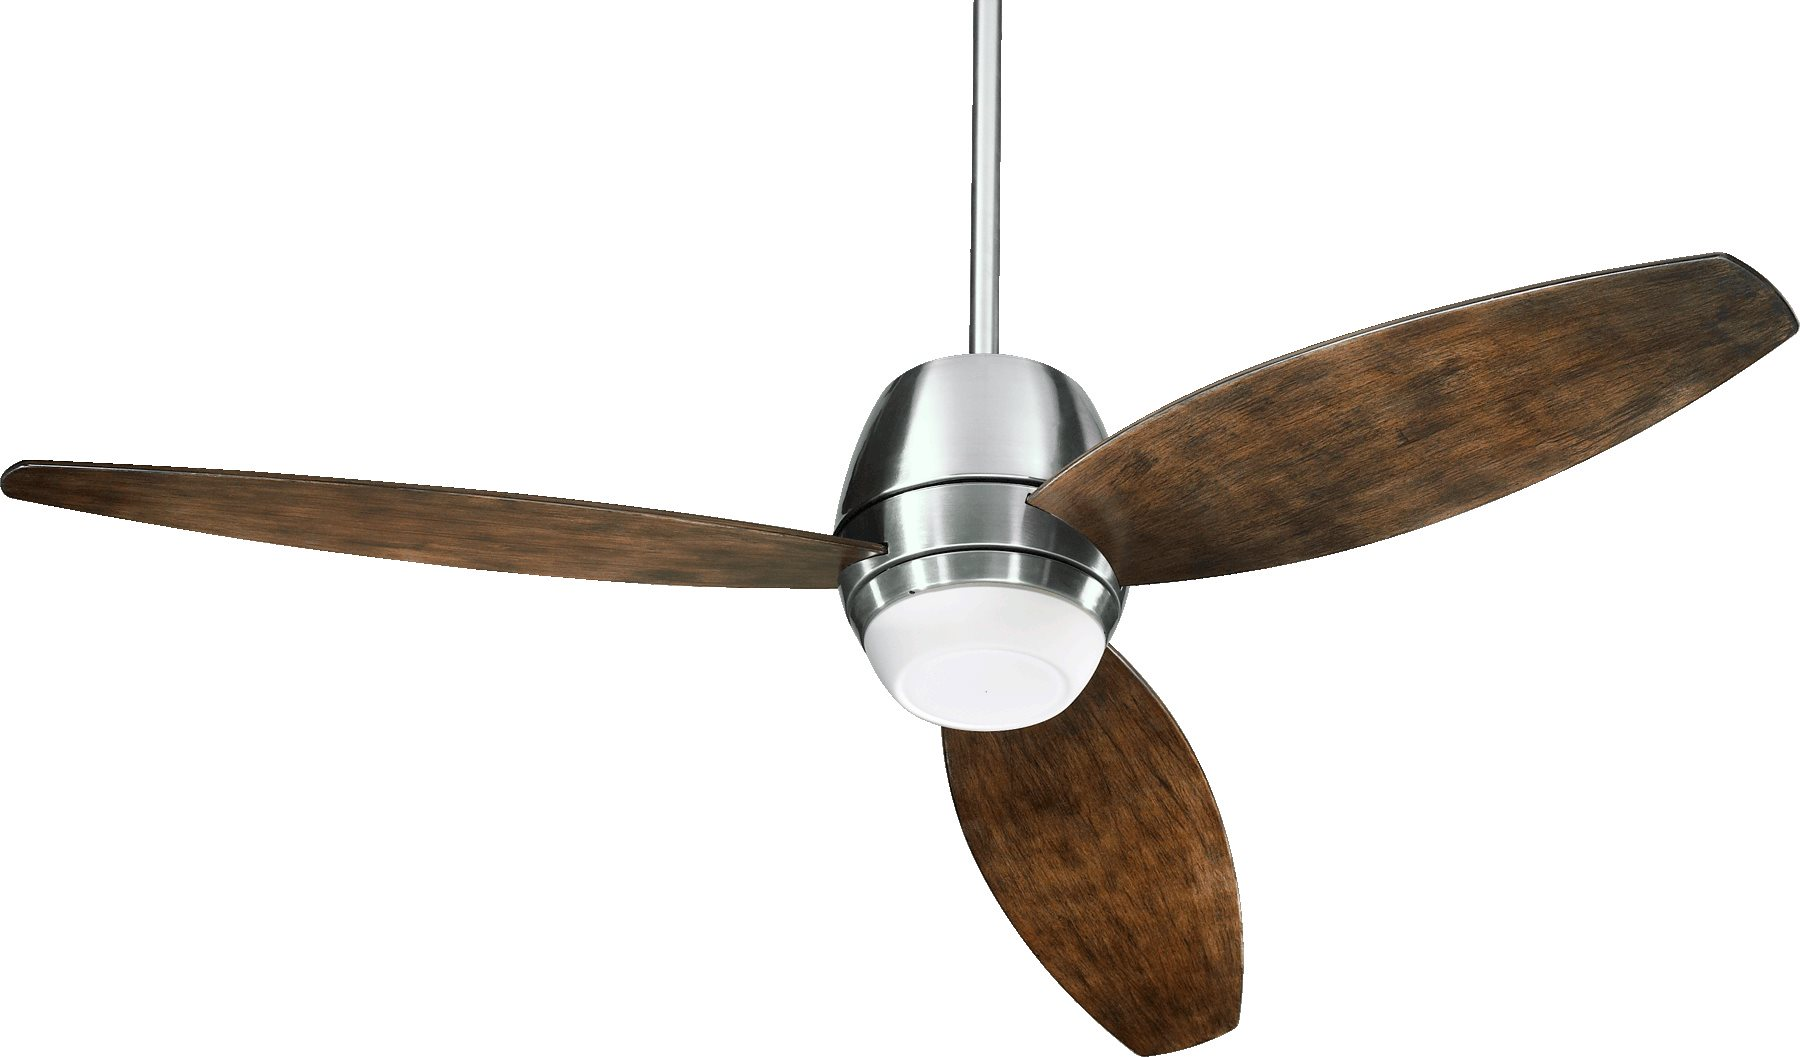 Outdoor Modern Fans Quorum Lighting 142523 Bronx Patio 52 Quot Contemporary